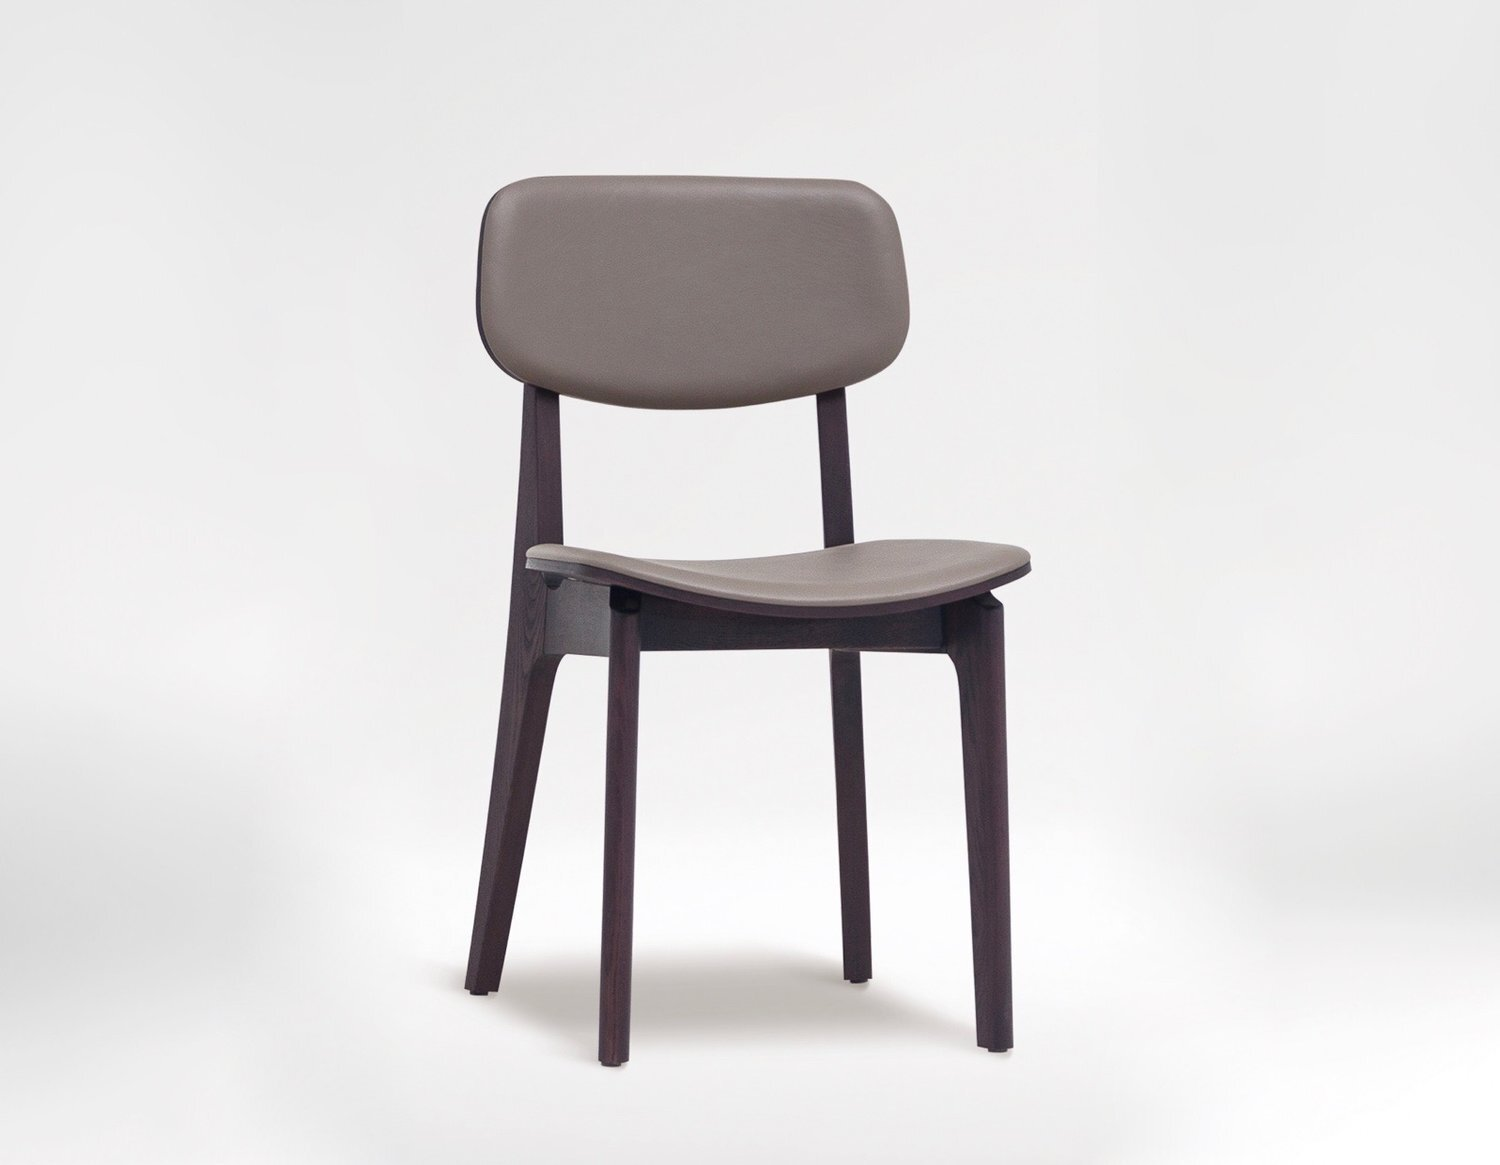 leaf chair - The Leaf Dining Chair is simple yet refined.